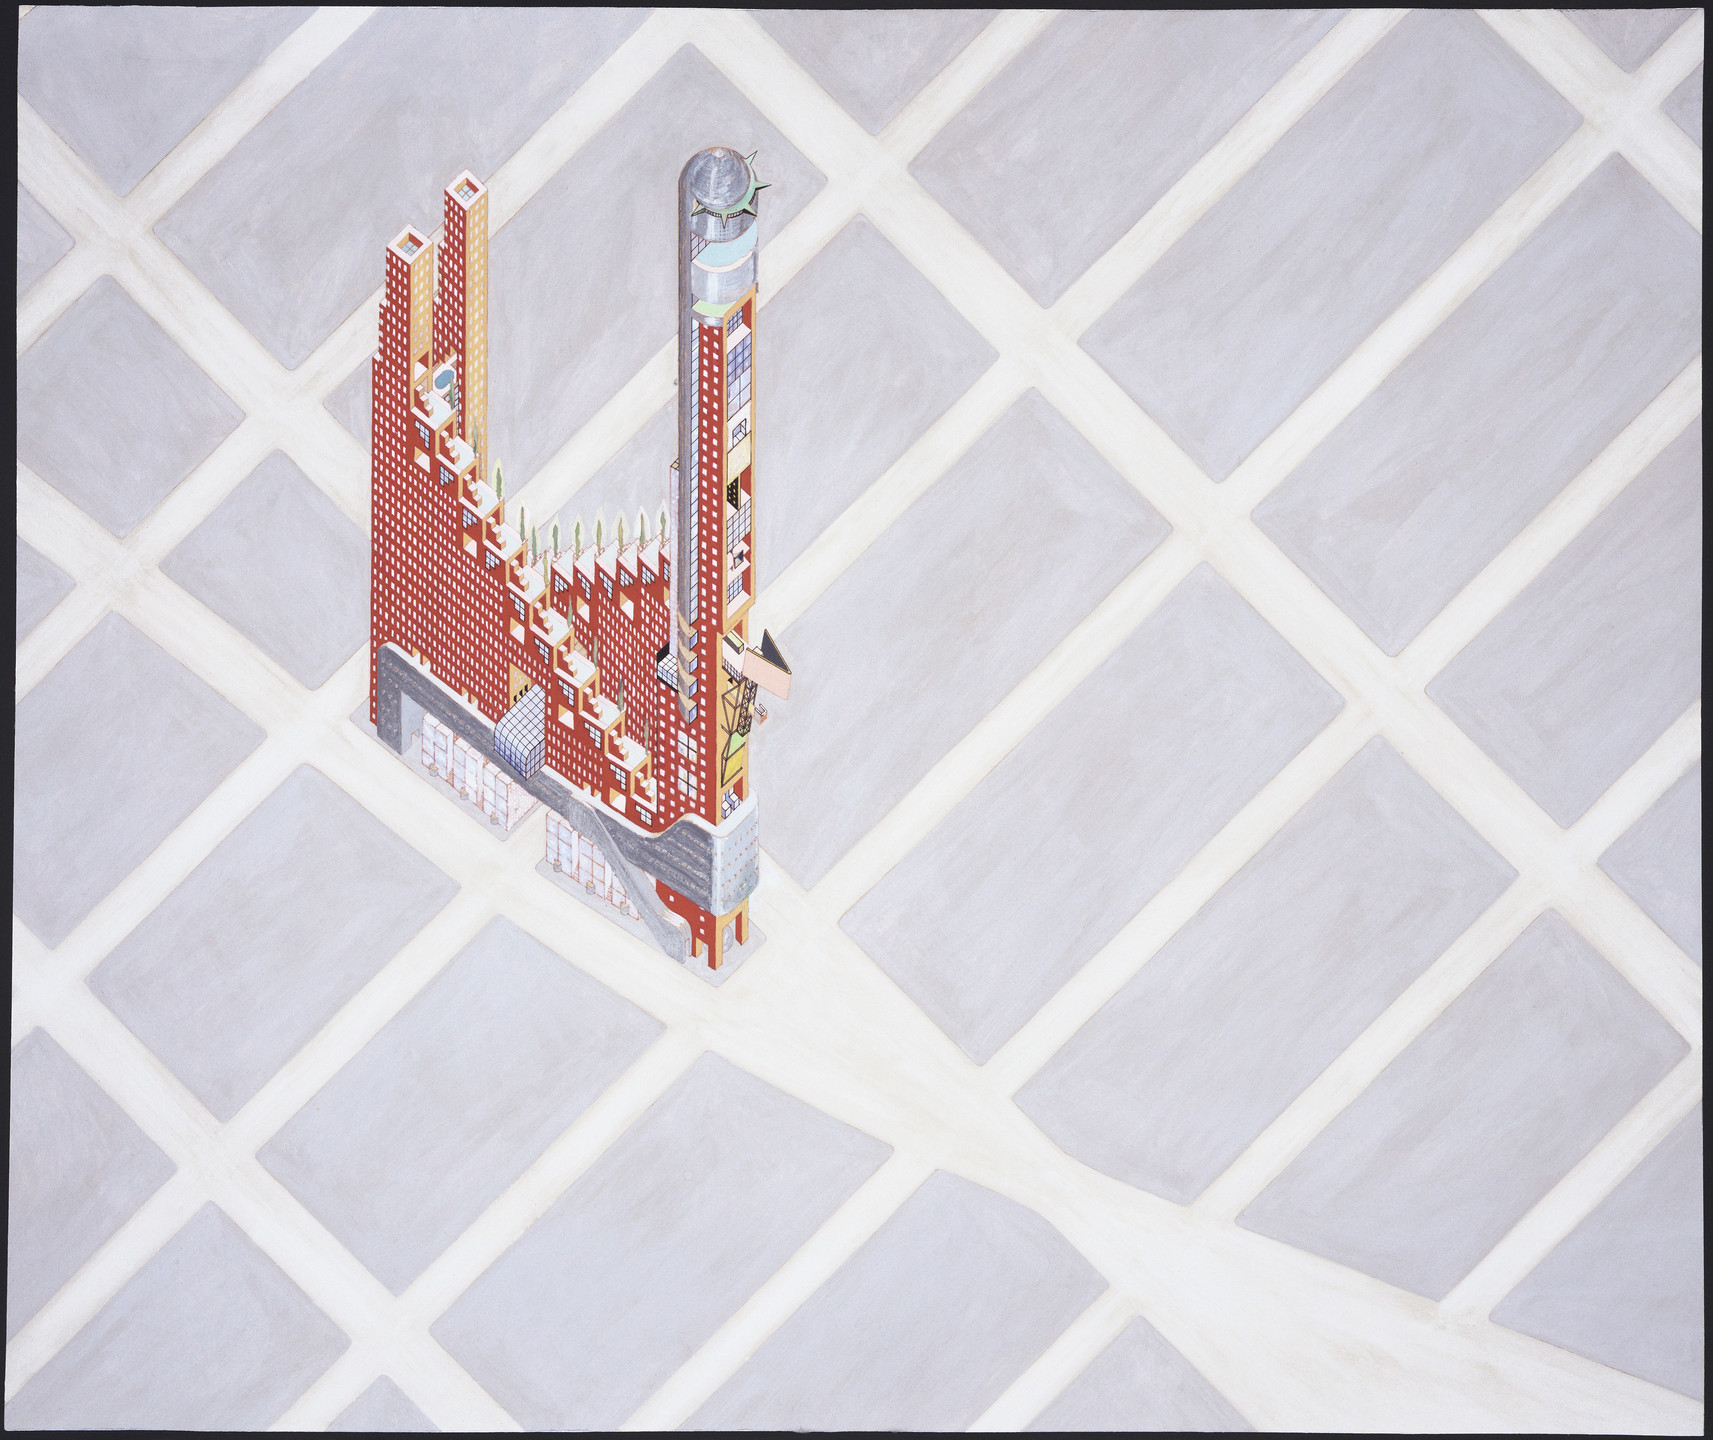 Elia Zenghelis, Zoe Zenghelis. Hotel Sphinx Project, New York, New York (Axonometric). 1975–1976